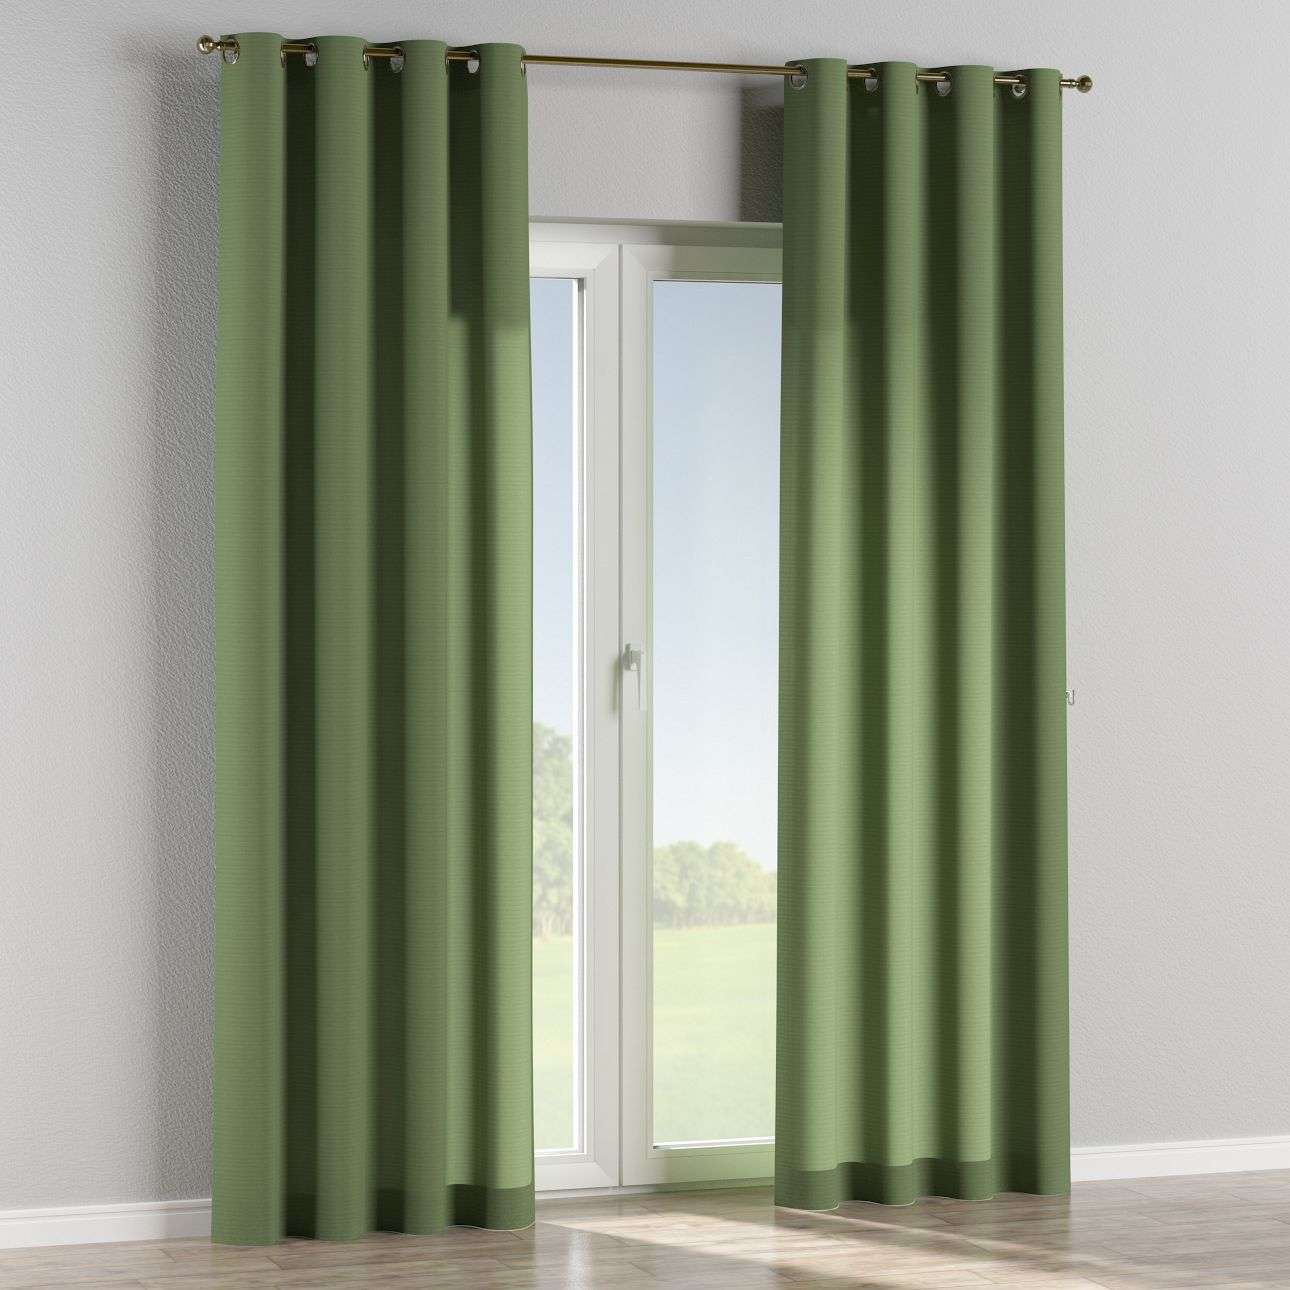 Eyelet curtains 130 × 260 cm (51 × 102 inch) in collection Jupiter, fabric: 127-52